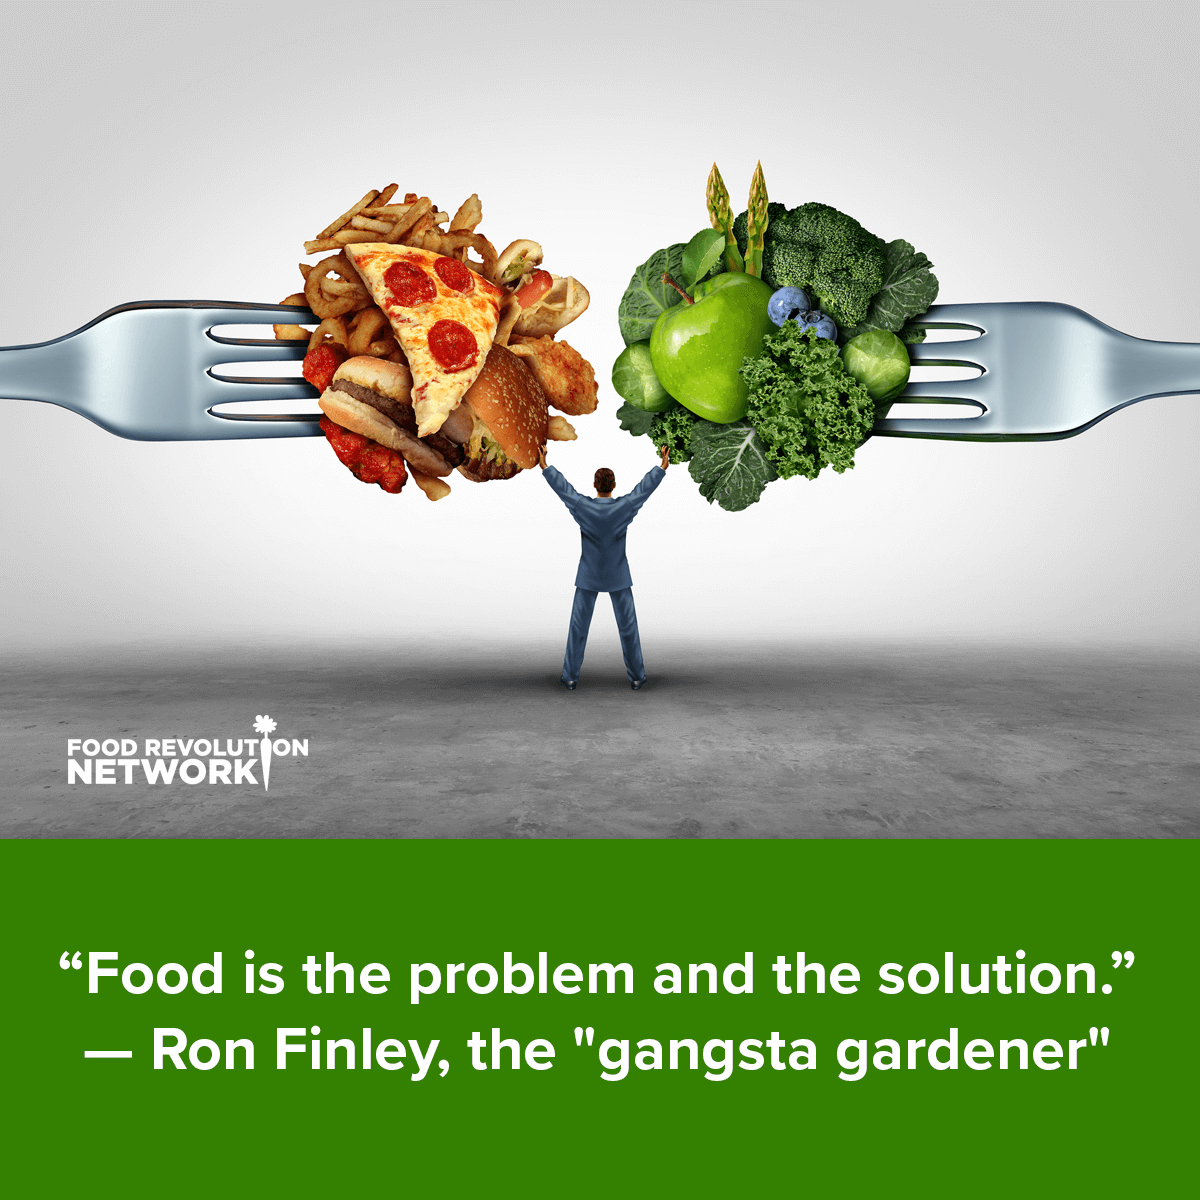 Food is the problem and the solution - Ron Finley, The Gangsta Gardener